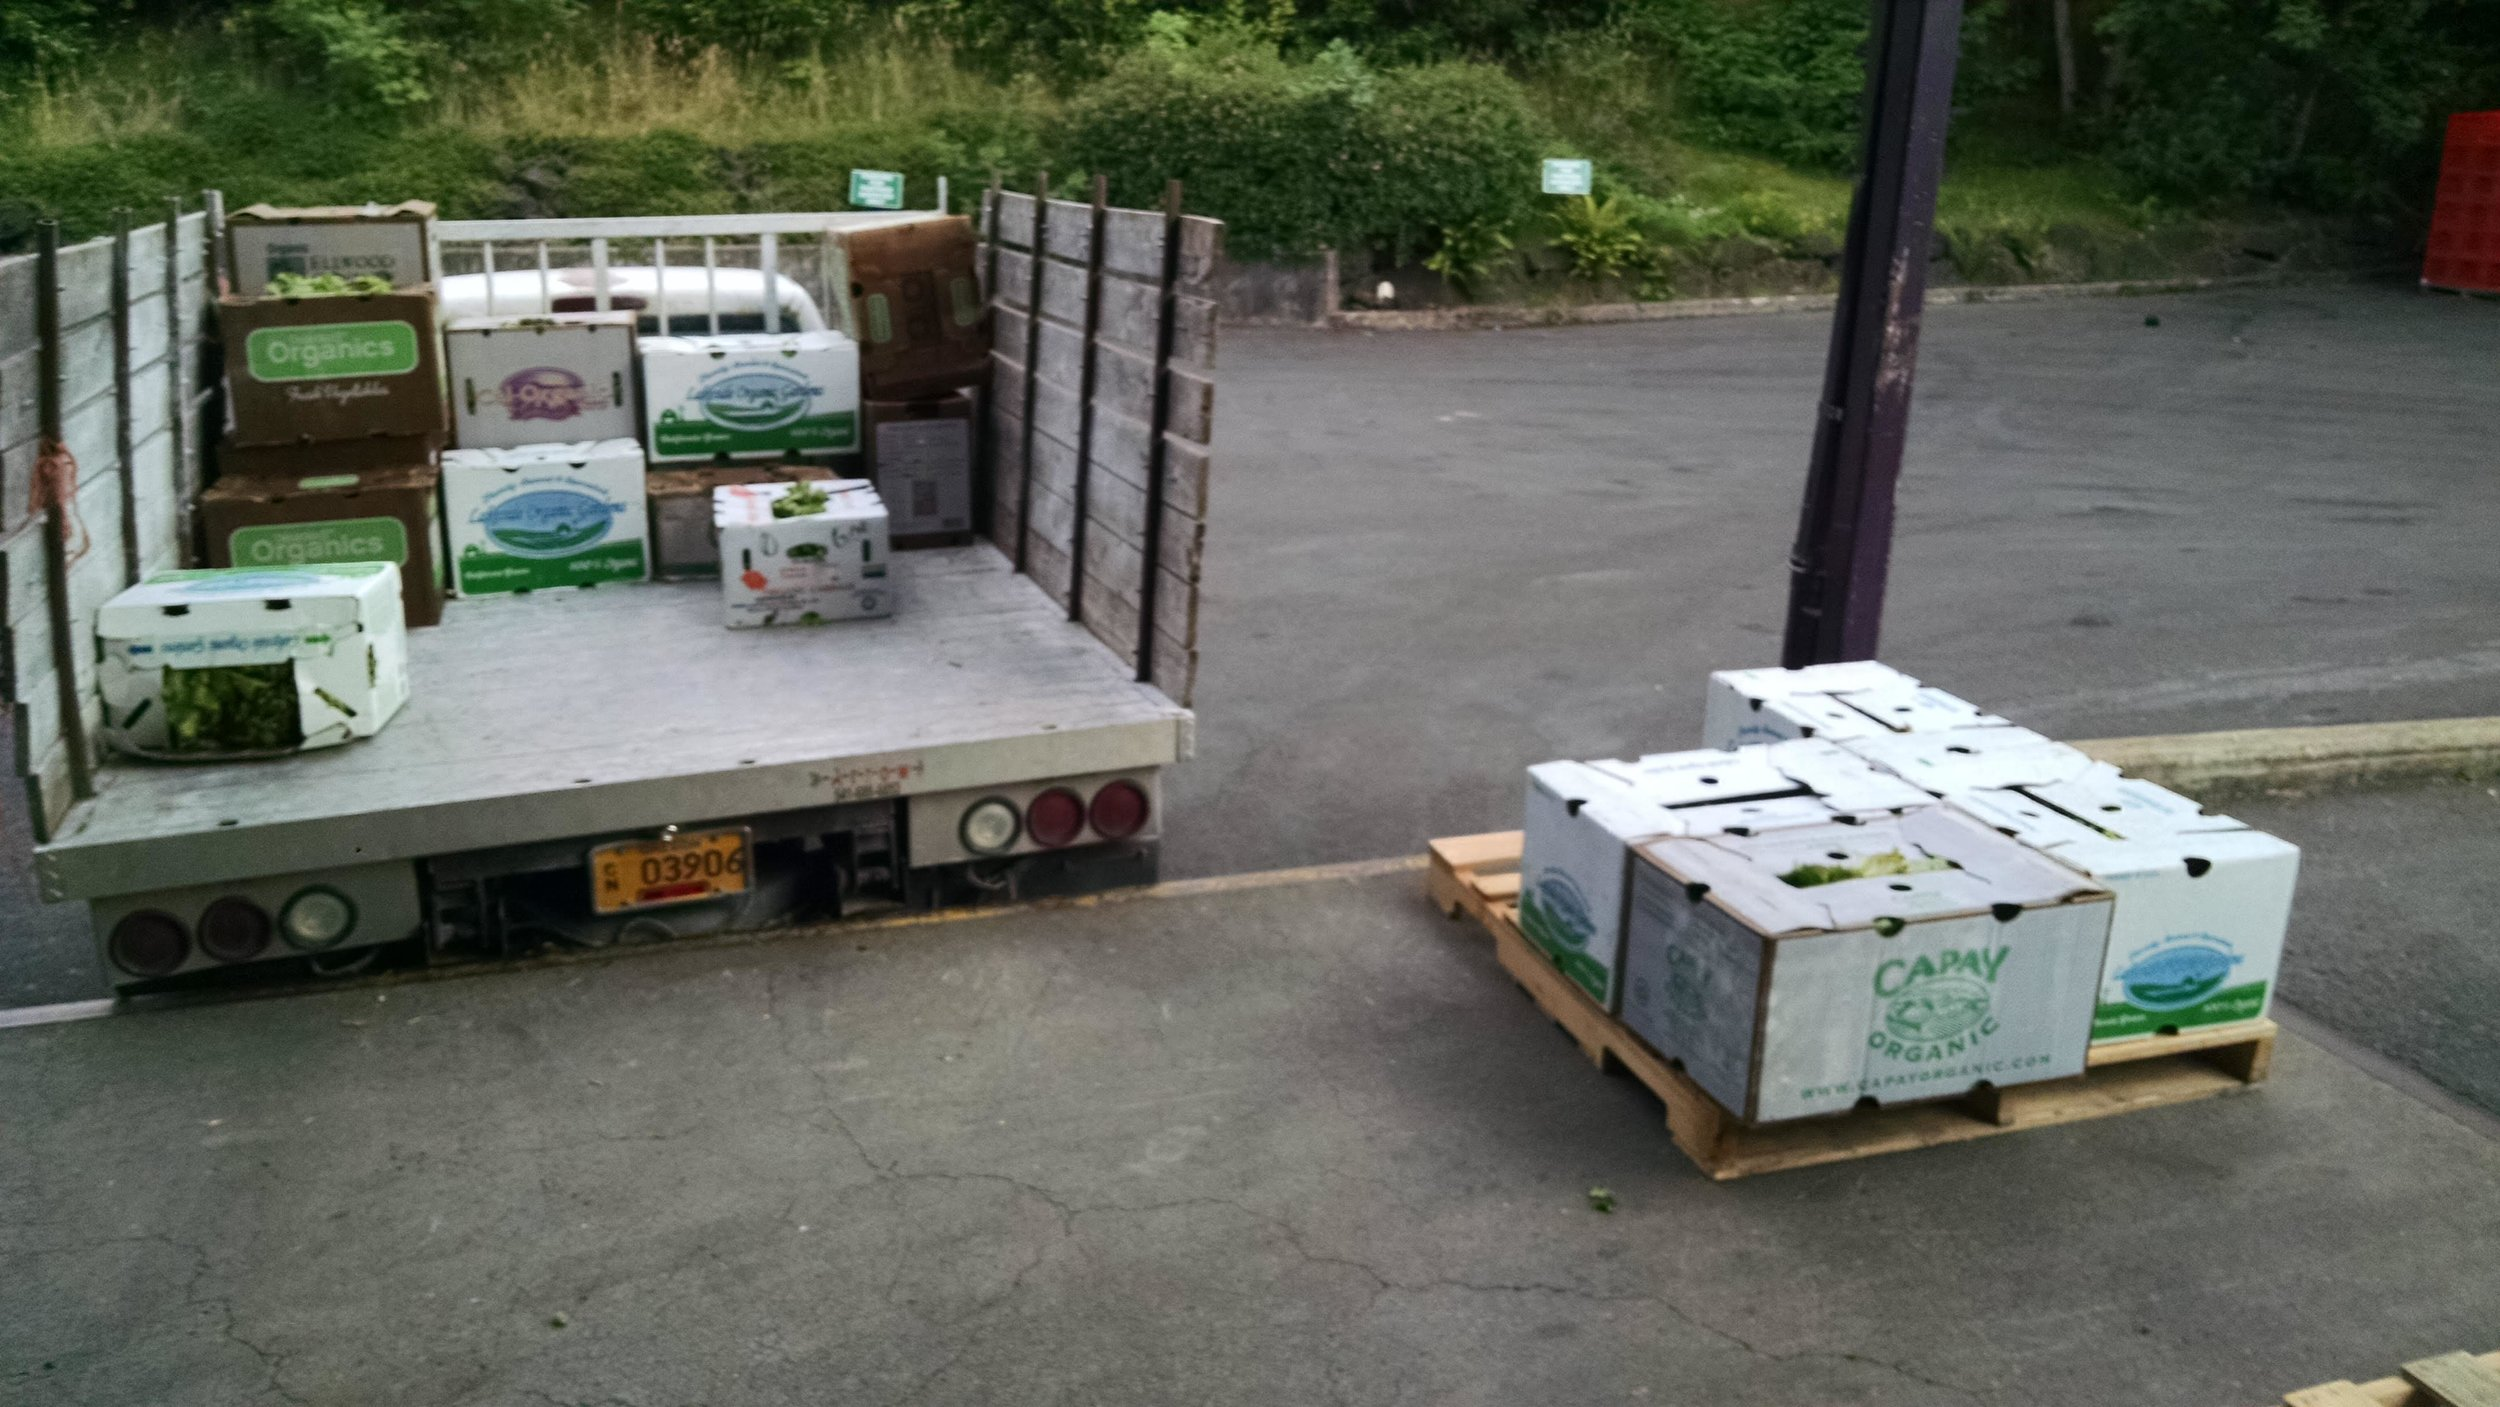 Almost done emptying the truck for the food bank